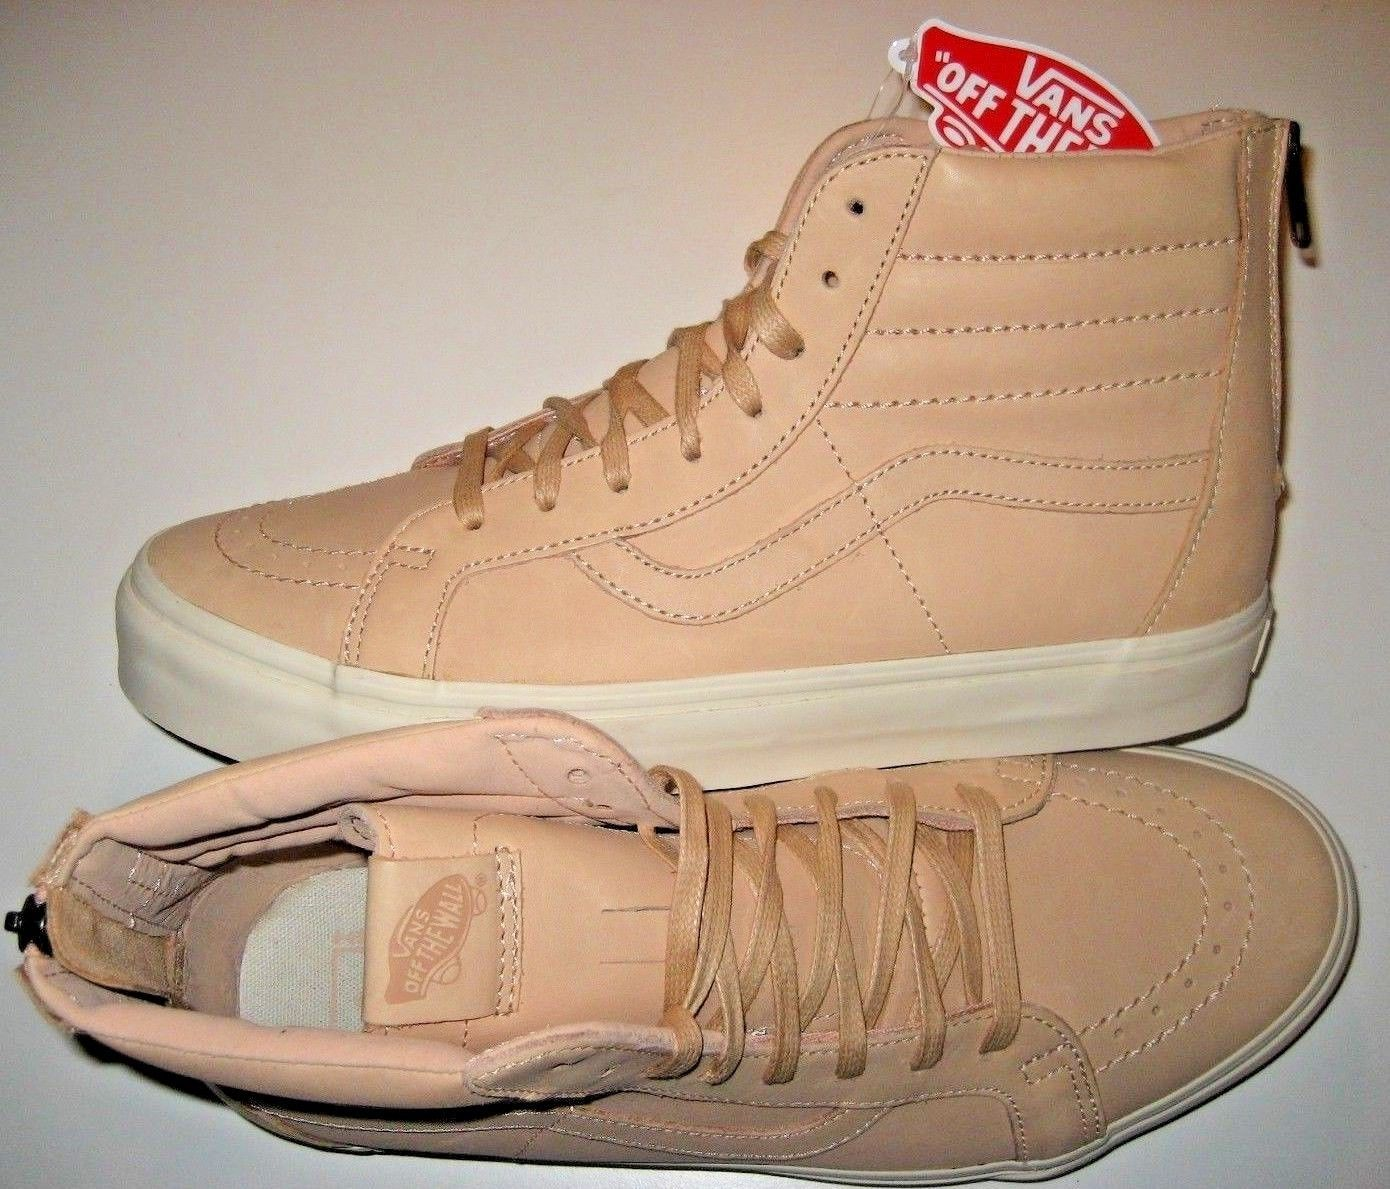 Vans Sk8-Hi Reissue Zipper Mens Veggie Tan Leather Skate shoes Size 11.5 NWT